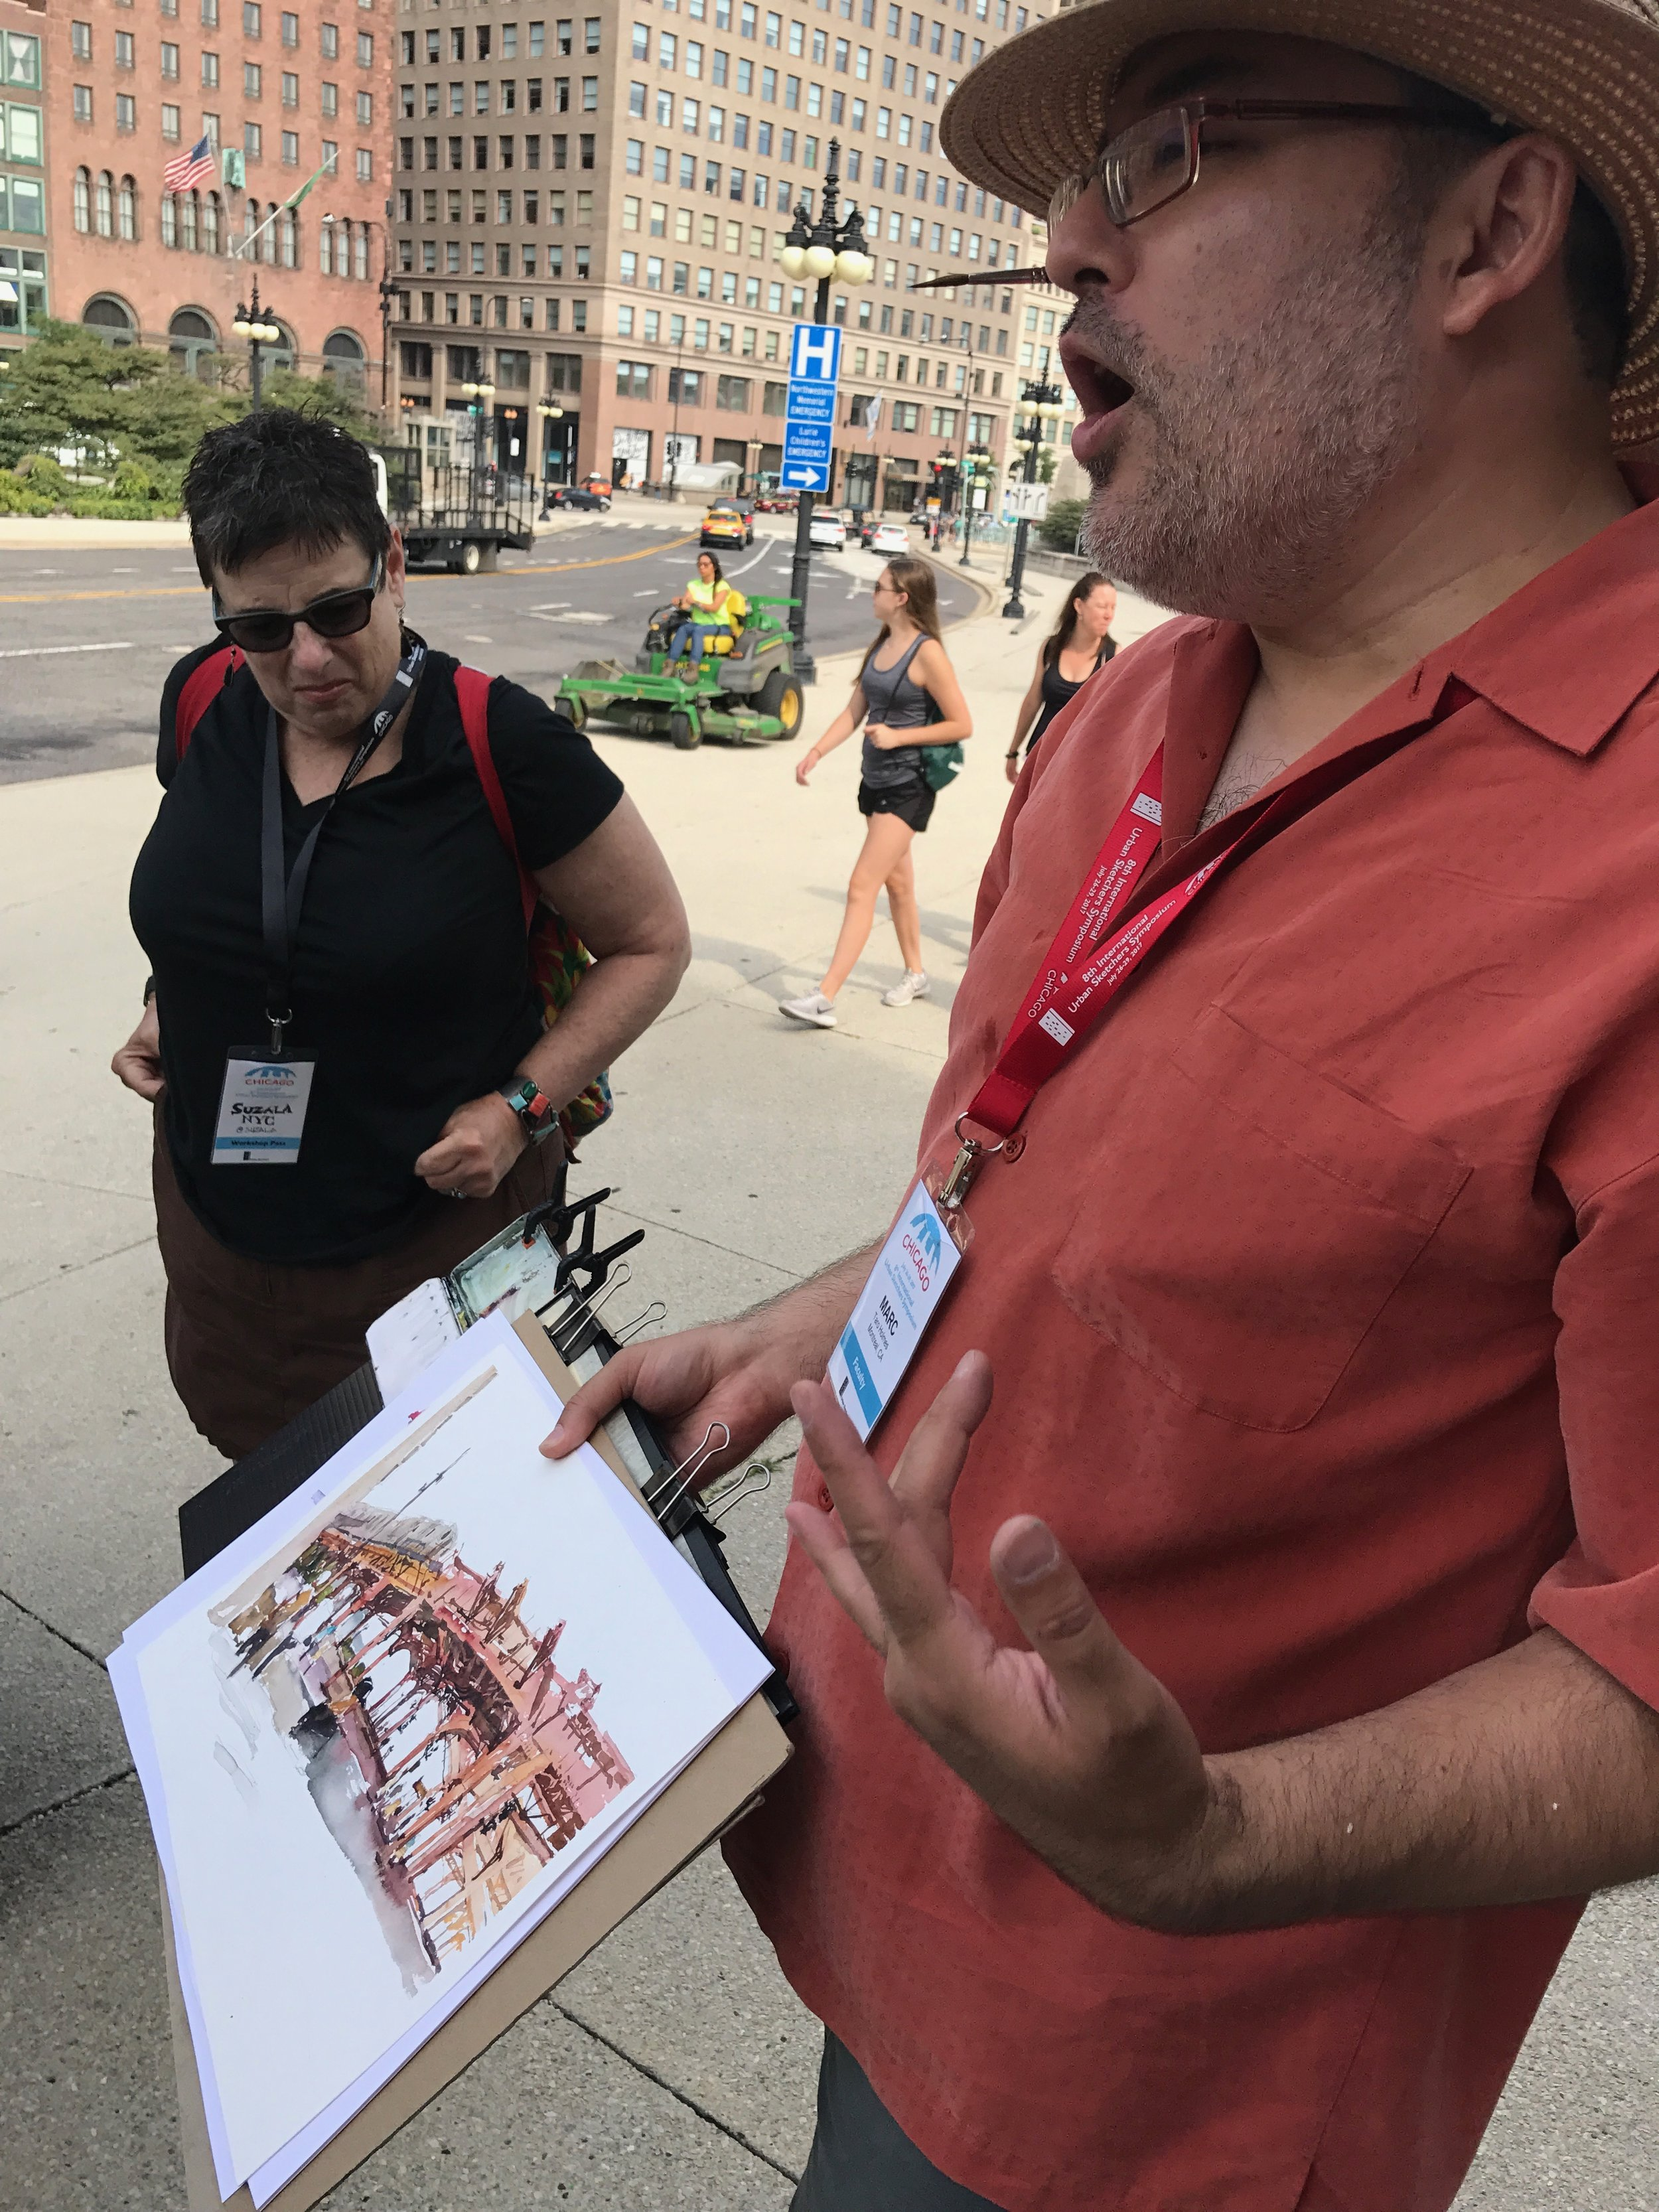 Marc showing us an urban sketch of the elevated train in Chicago